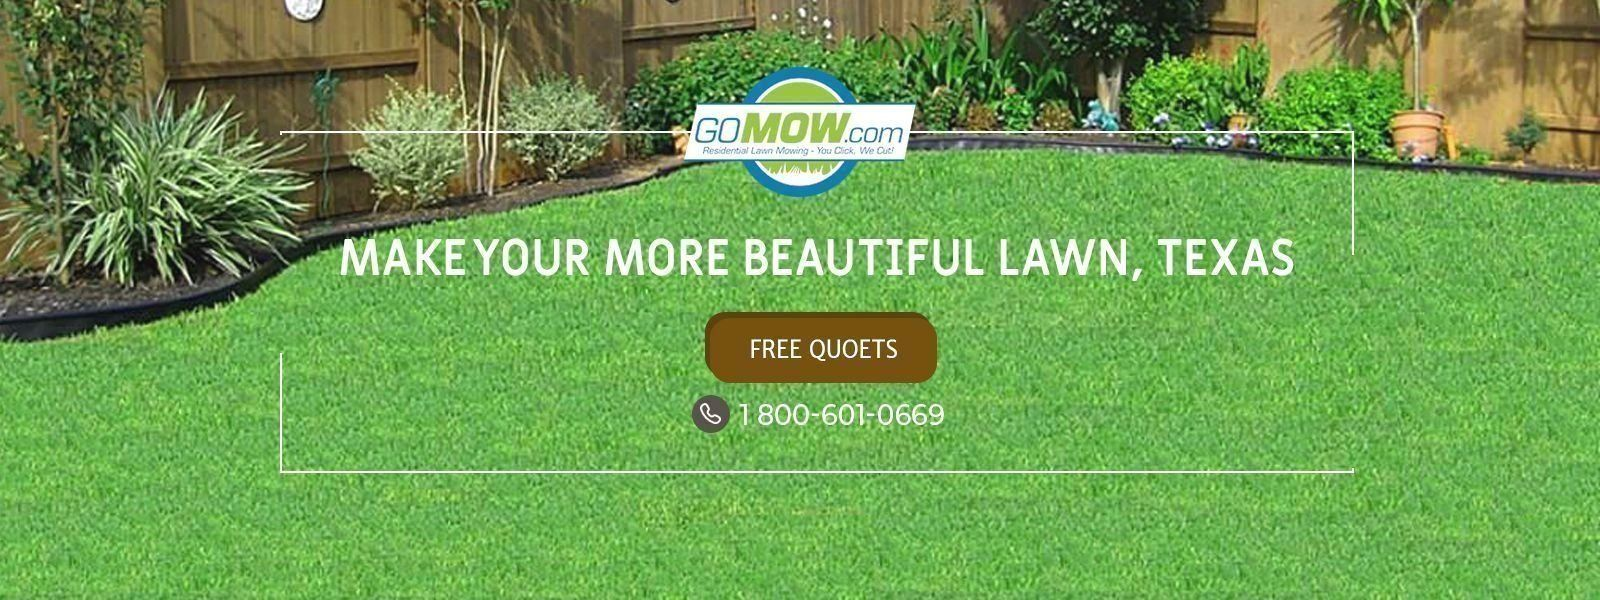 Start with gomow lawn mowing services make you more